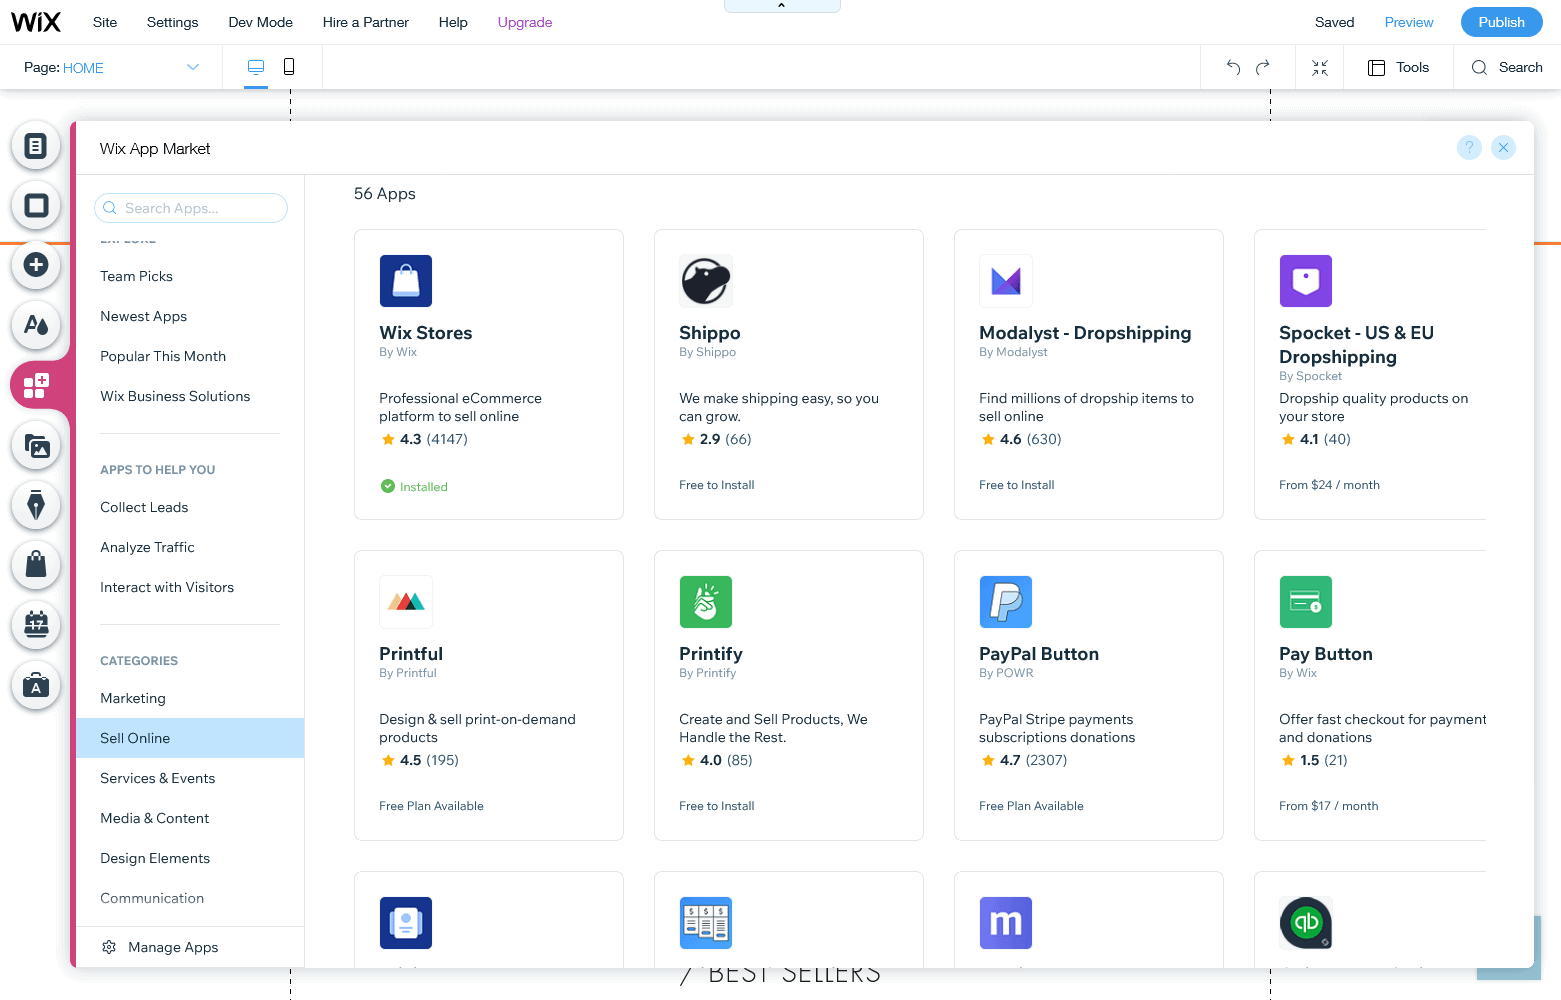 the Wix app marketplace